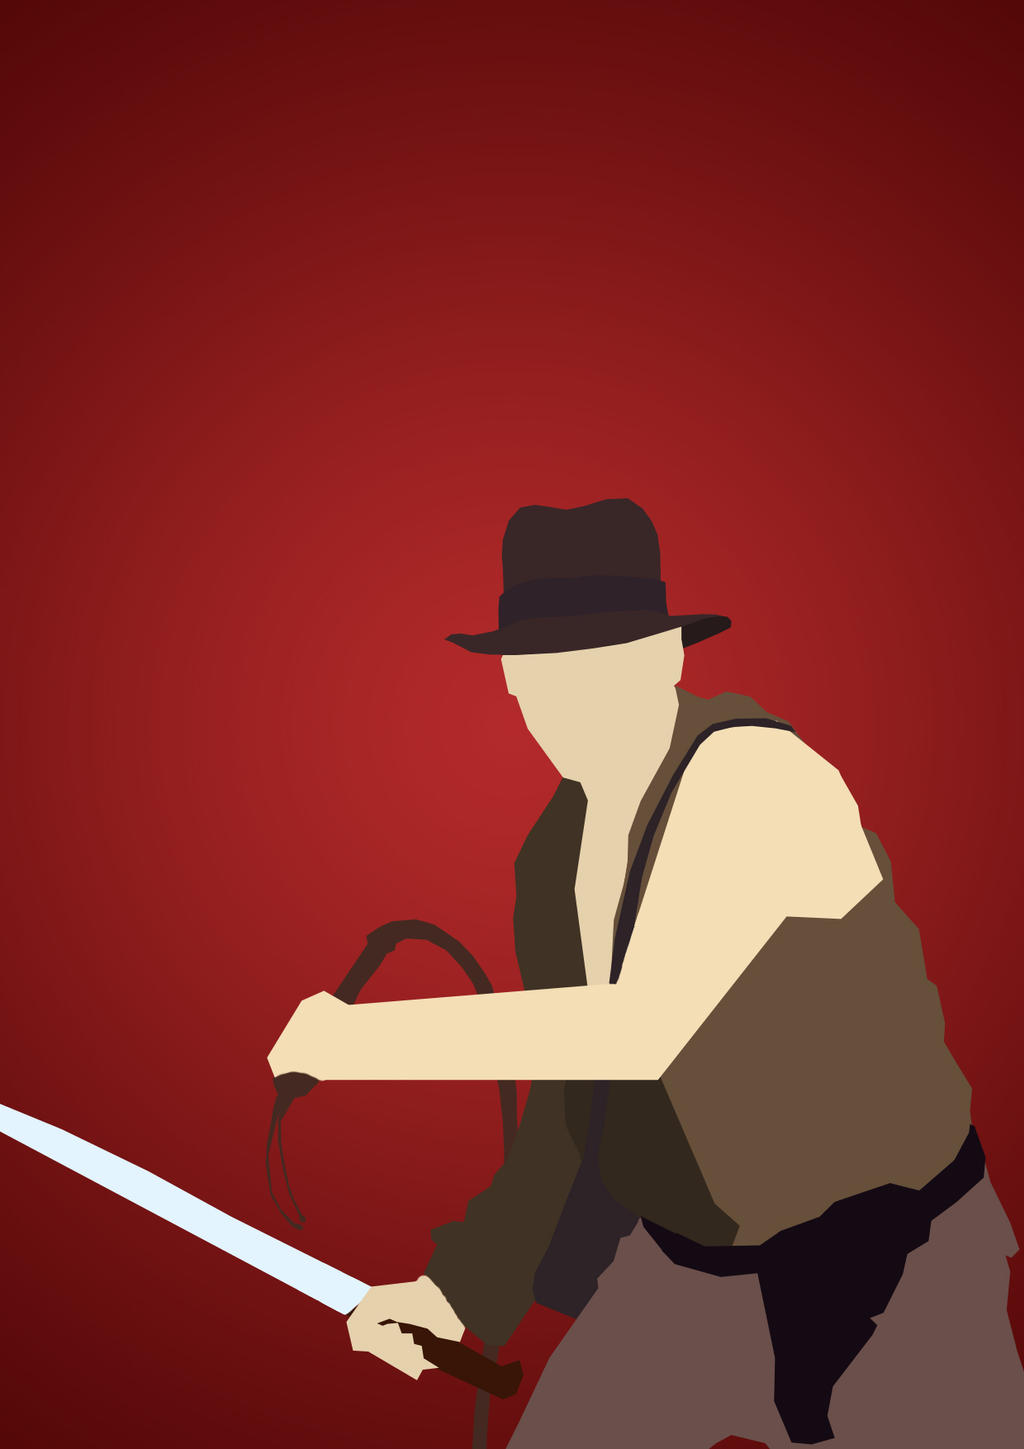 Indiana jones minimalist style by consideredbypeers on for Minimal art reddit